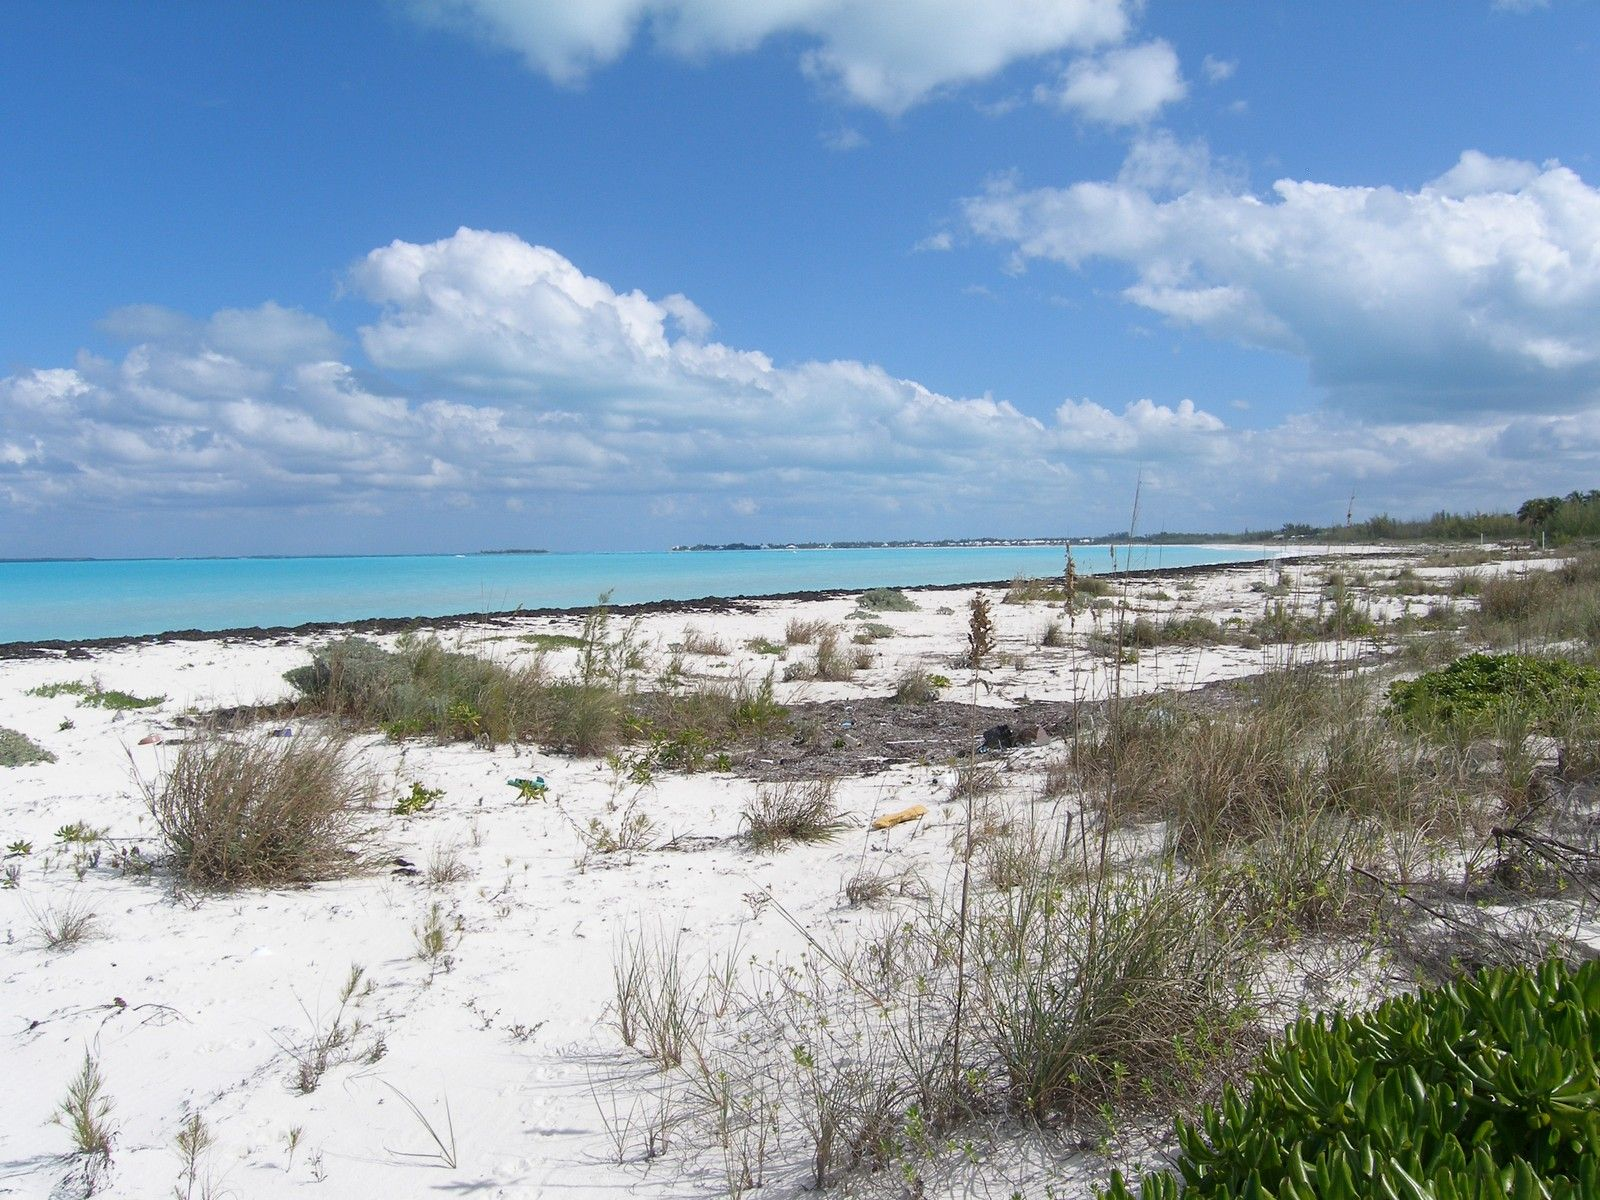 Terreno per Vendita alle ore Lot 27 Ocean Blvd. Treasure Cay, Abaco Bahamas